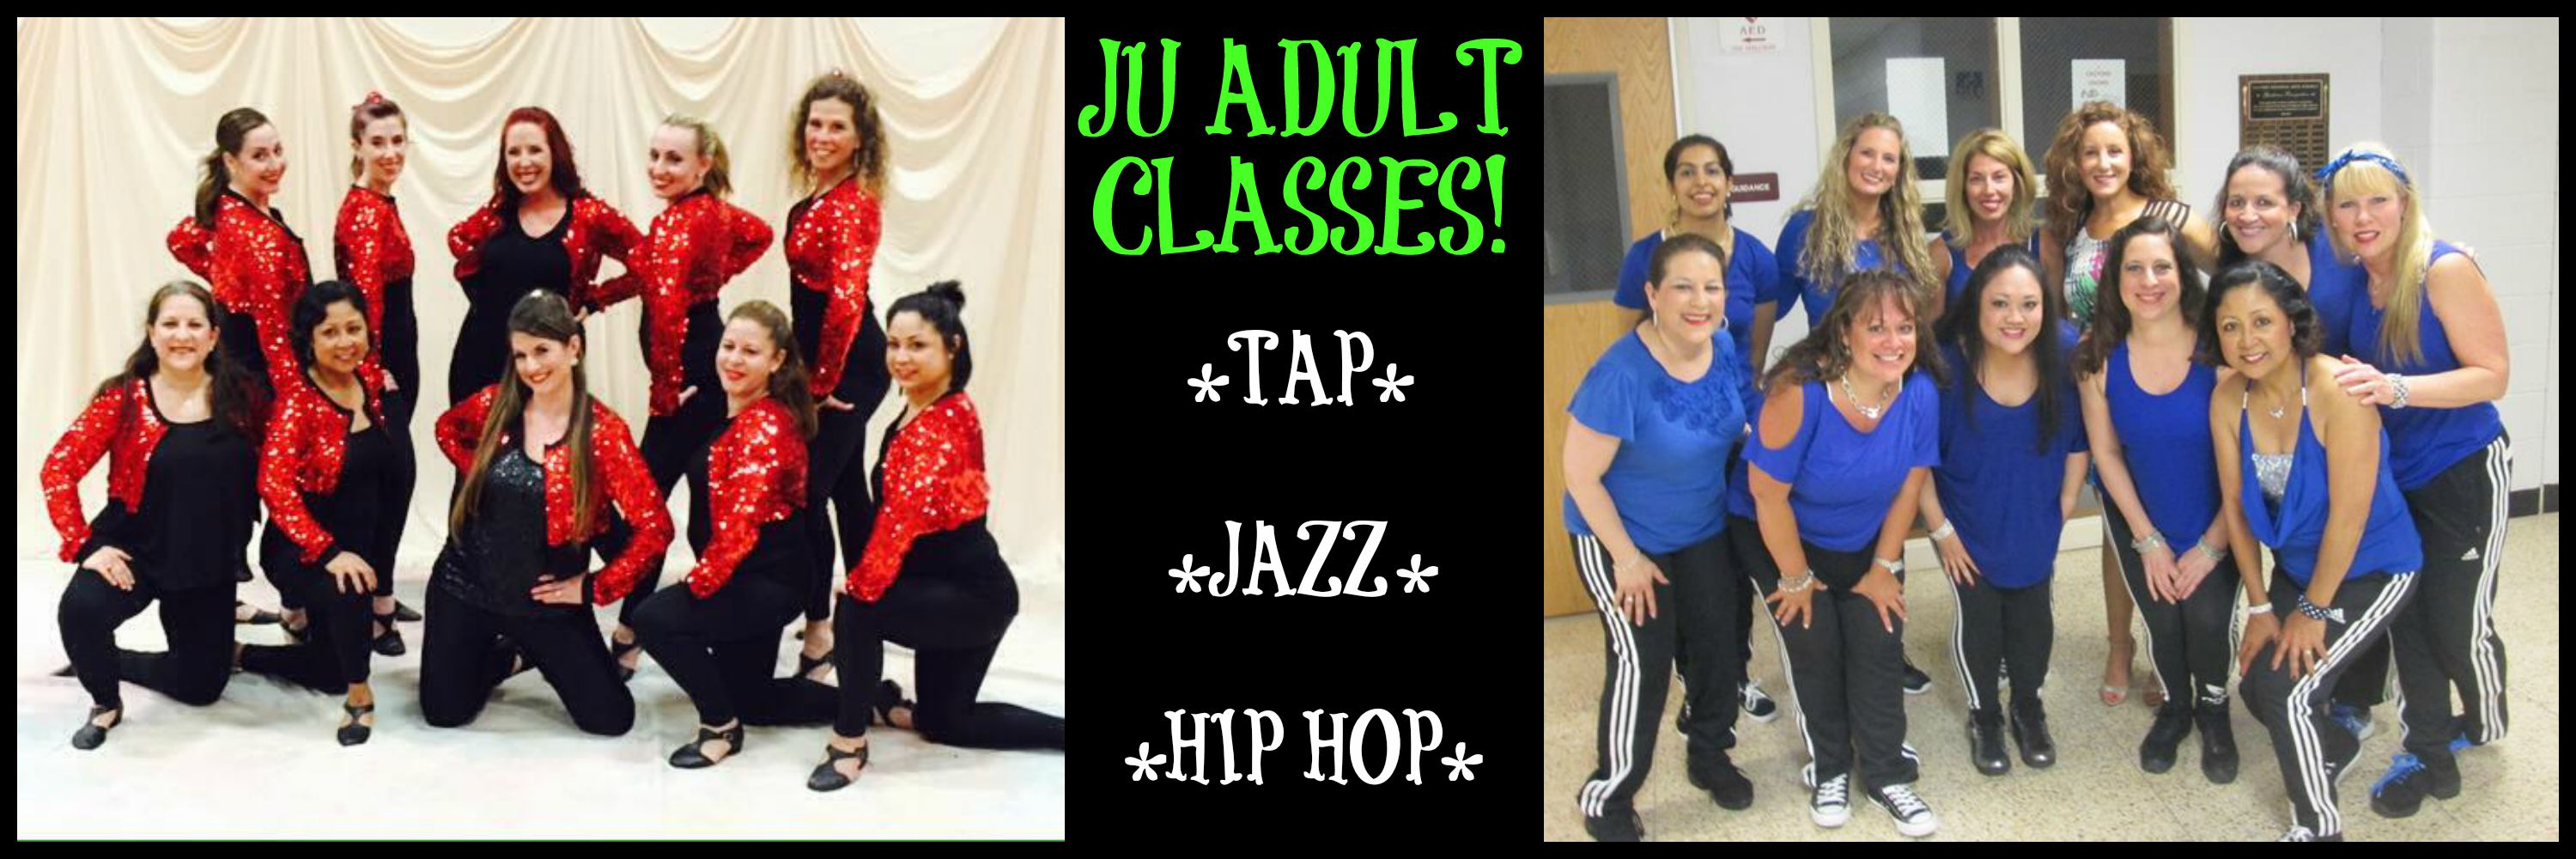 Dance classes for adult beginners